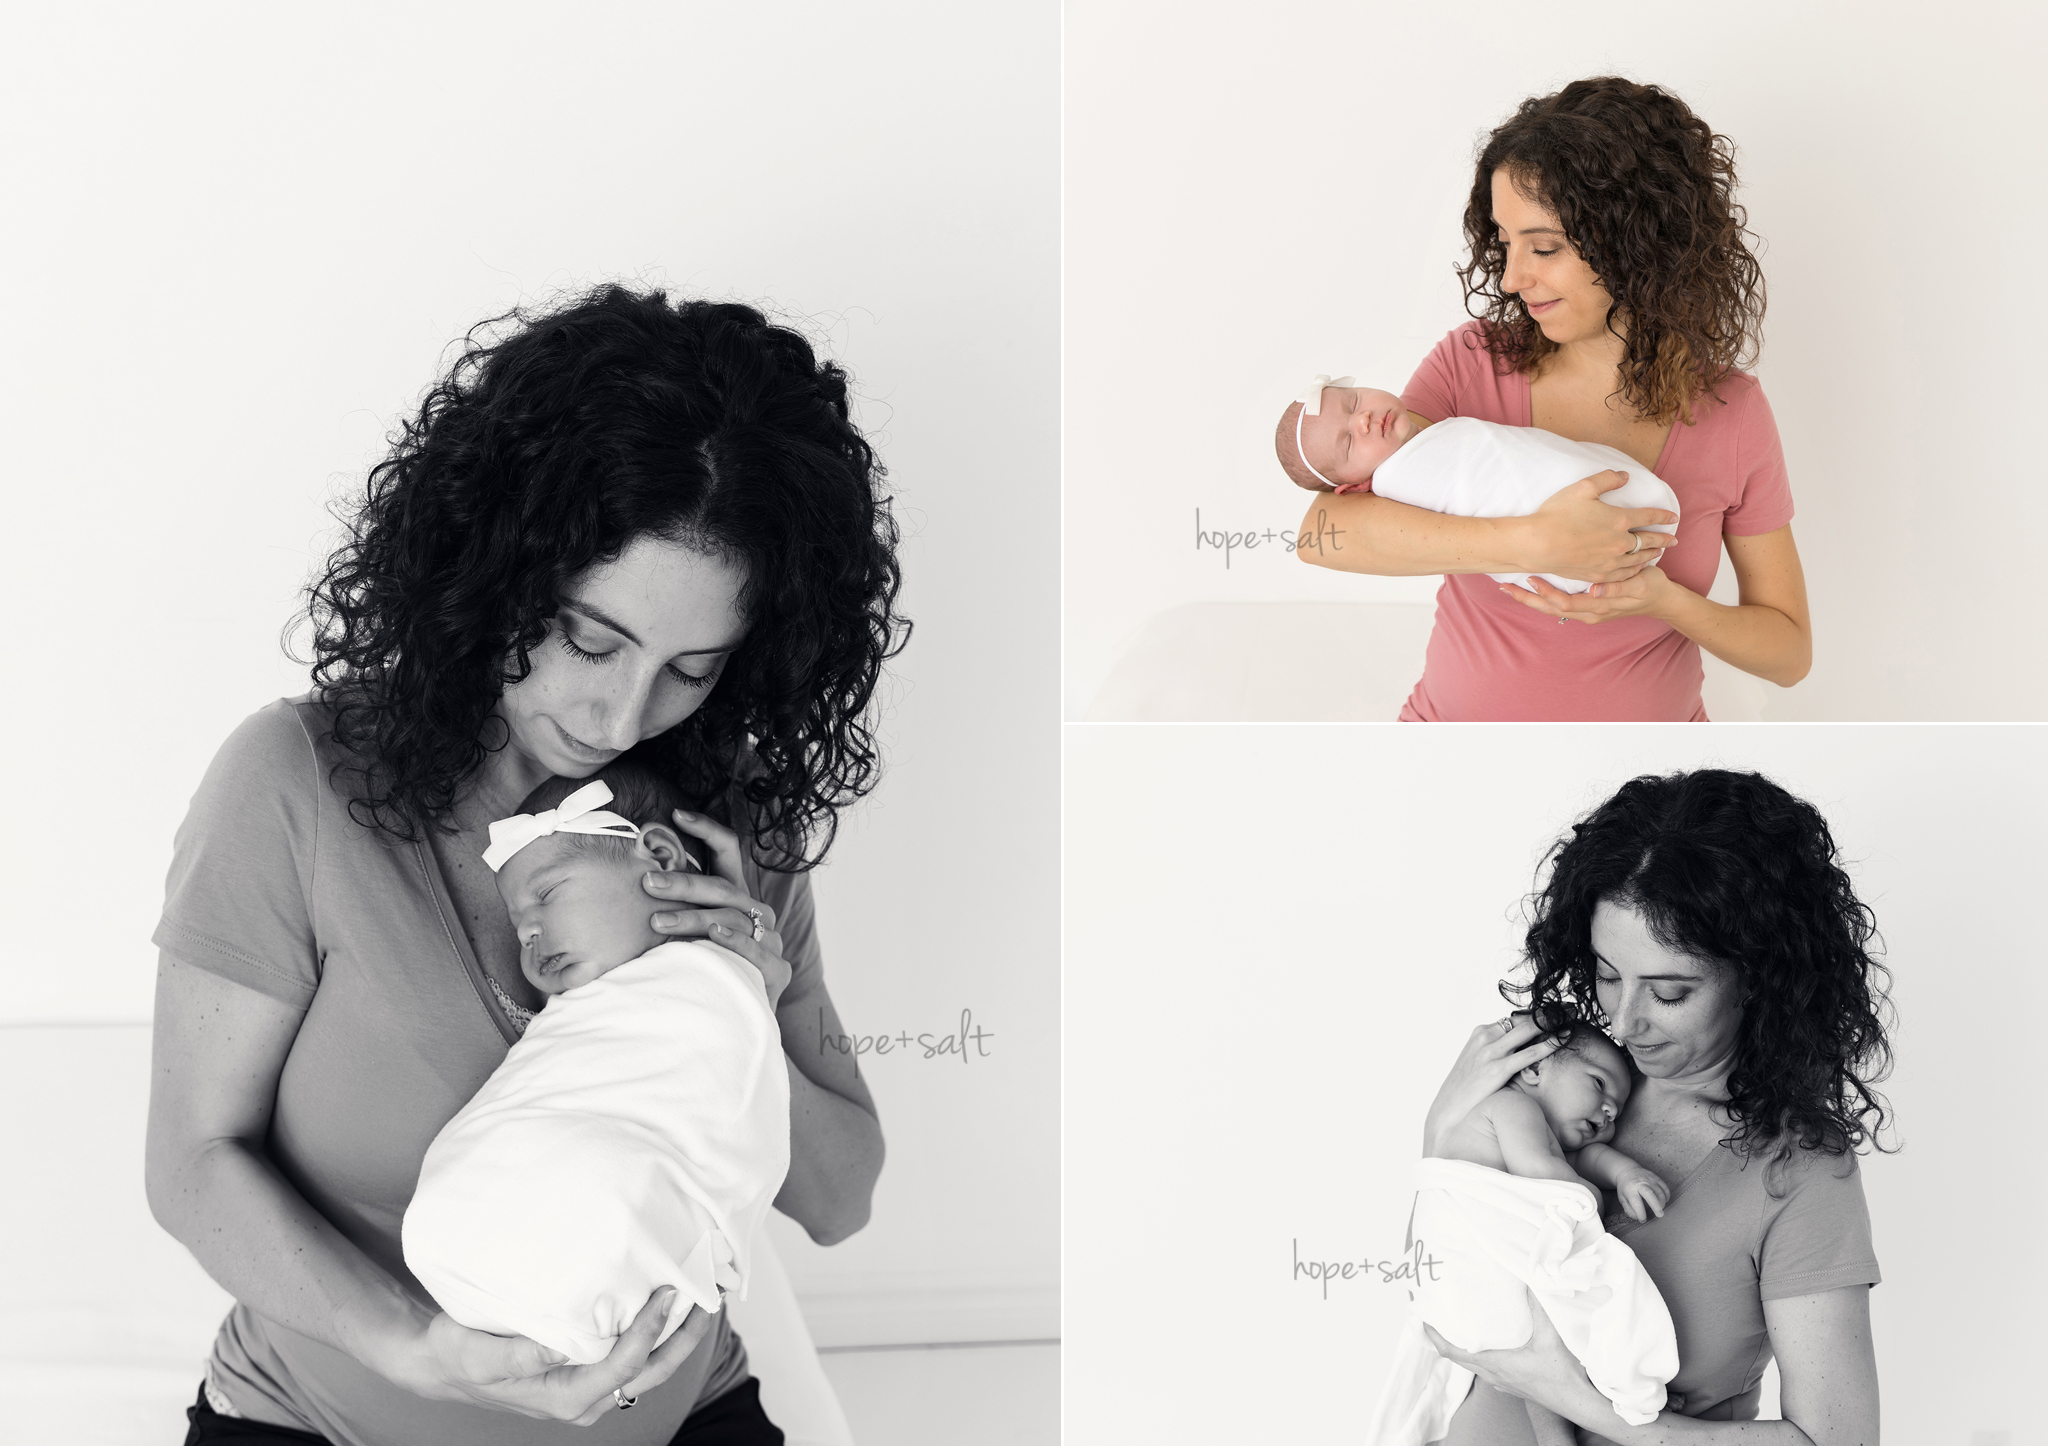 waterdown newborn photographer - in studio session for baby bianca and family simple natural timeless images by Hope and Salt